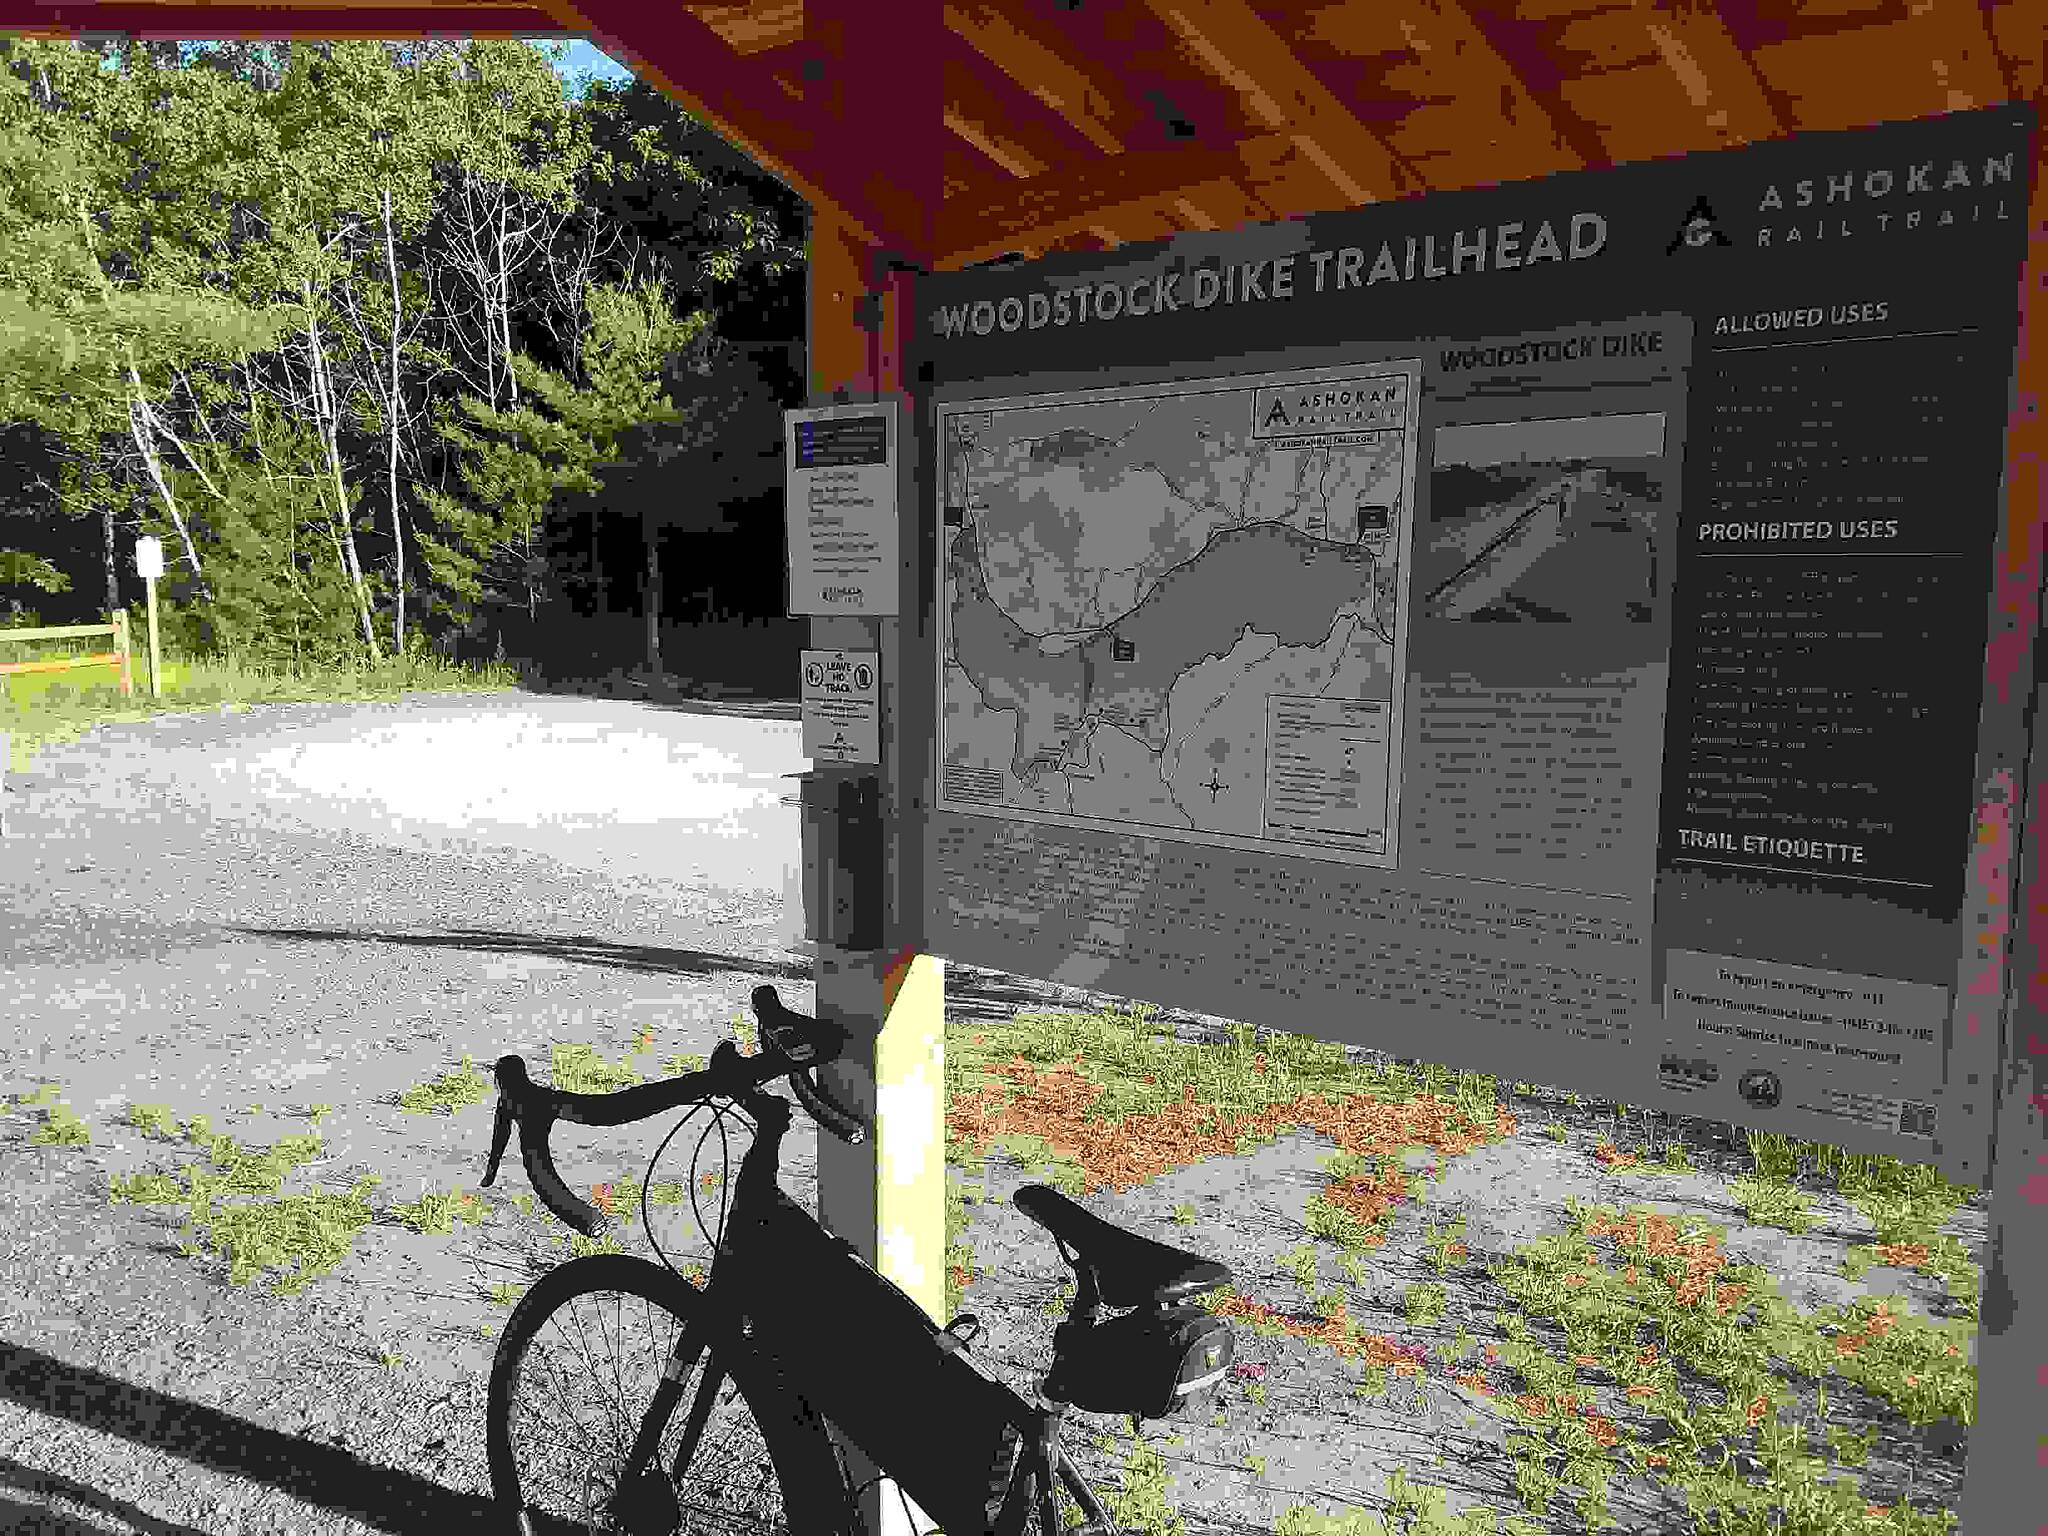 Ashokan Rail Trail West Hurley Trailhead